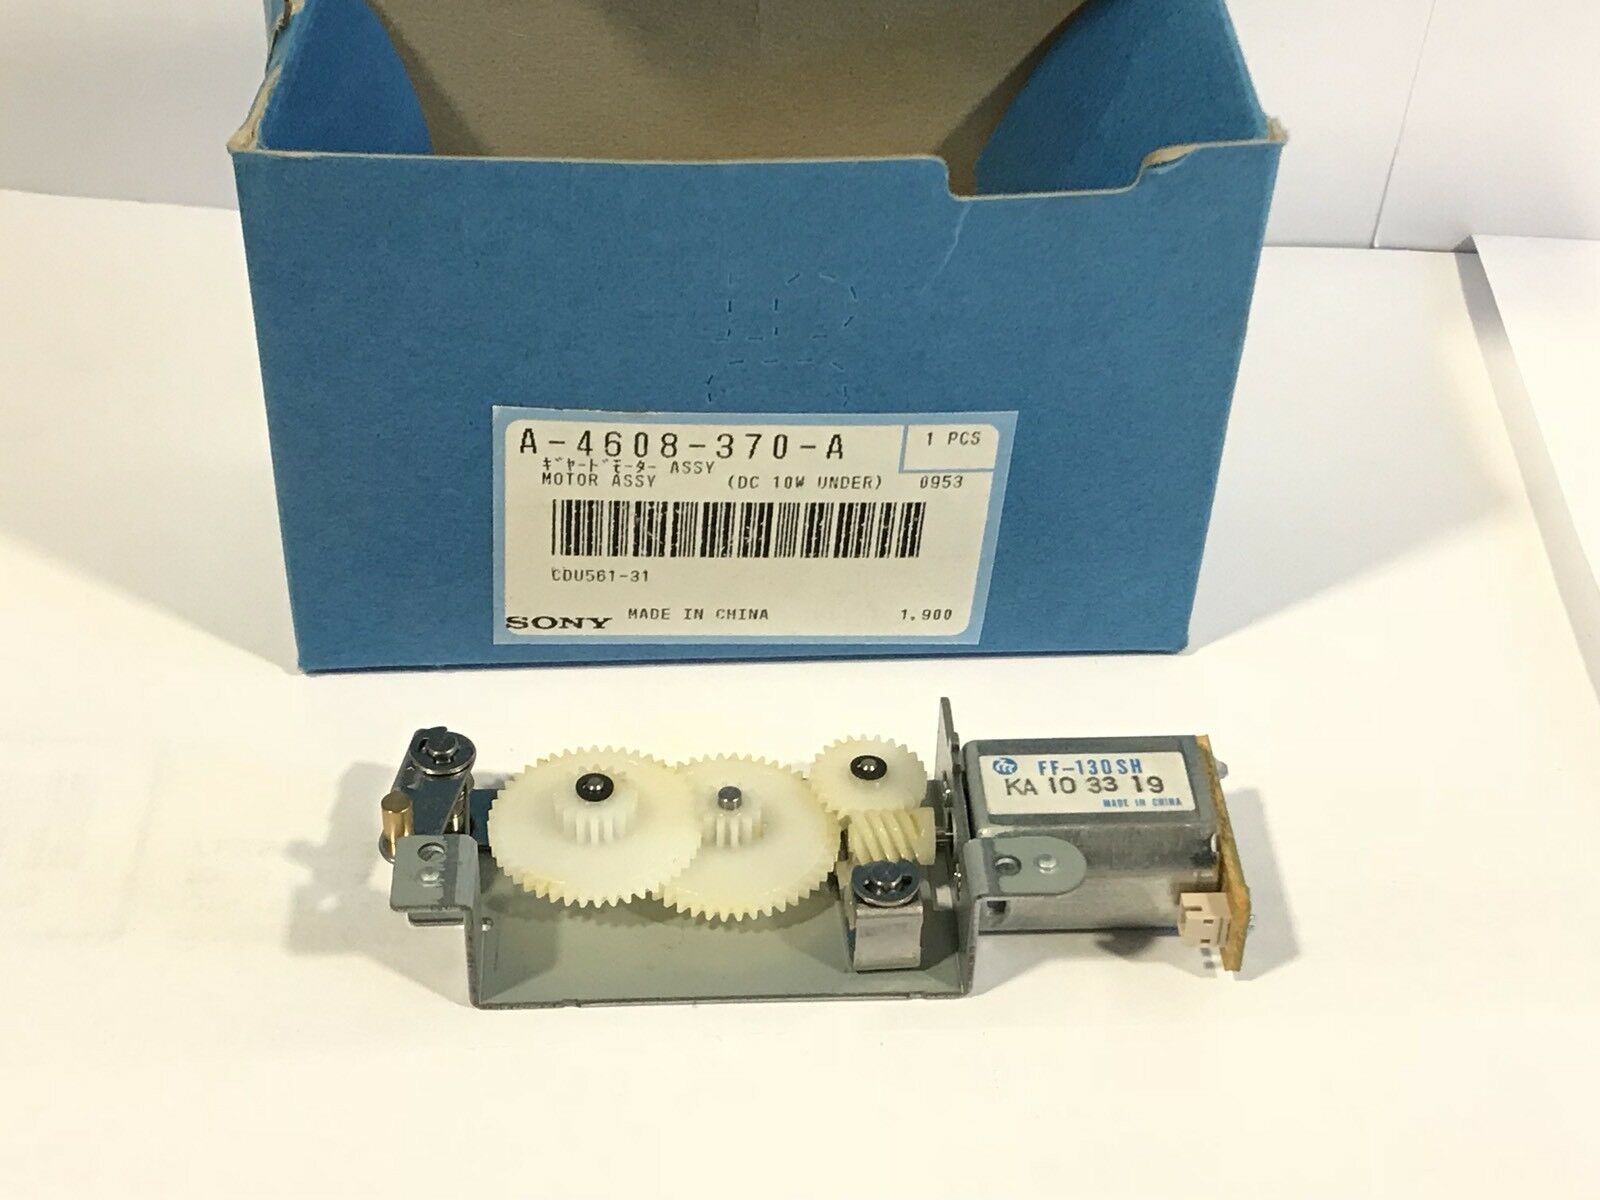 Sony A-4608-370-A Motor Gear Assembly possibly for cdp-3000 or cds-3000